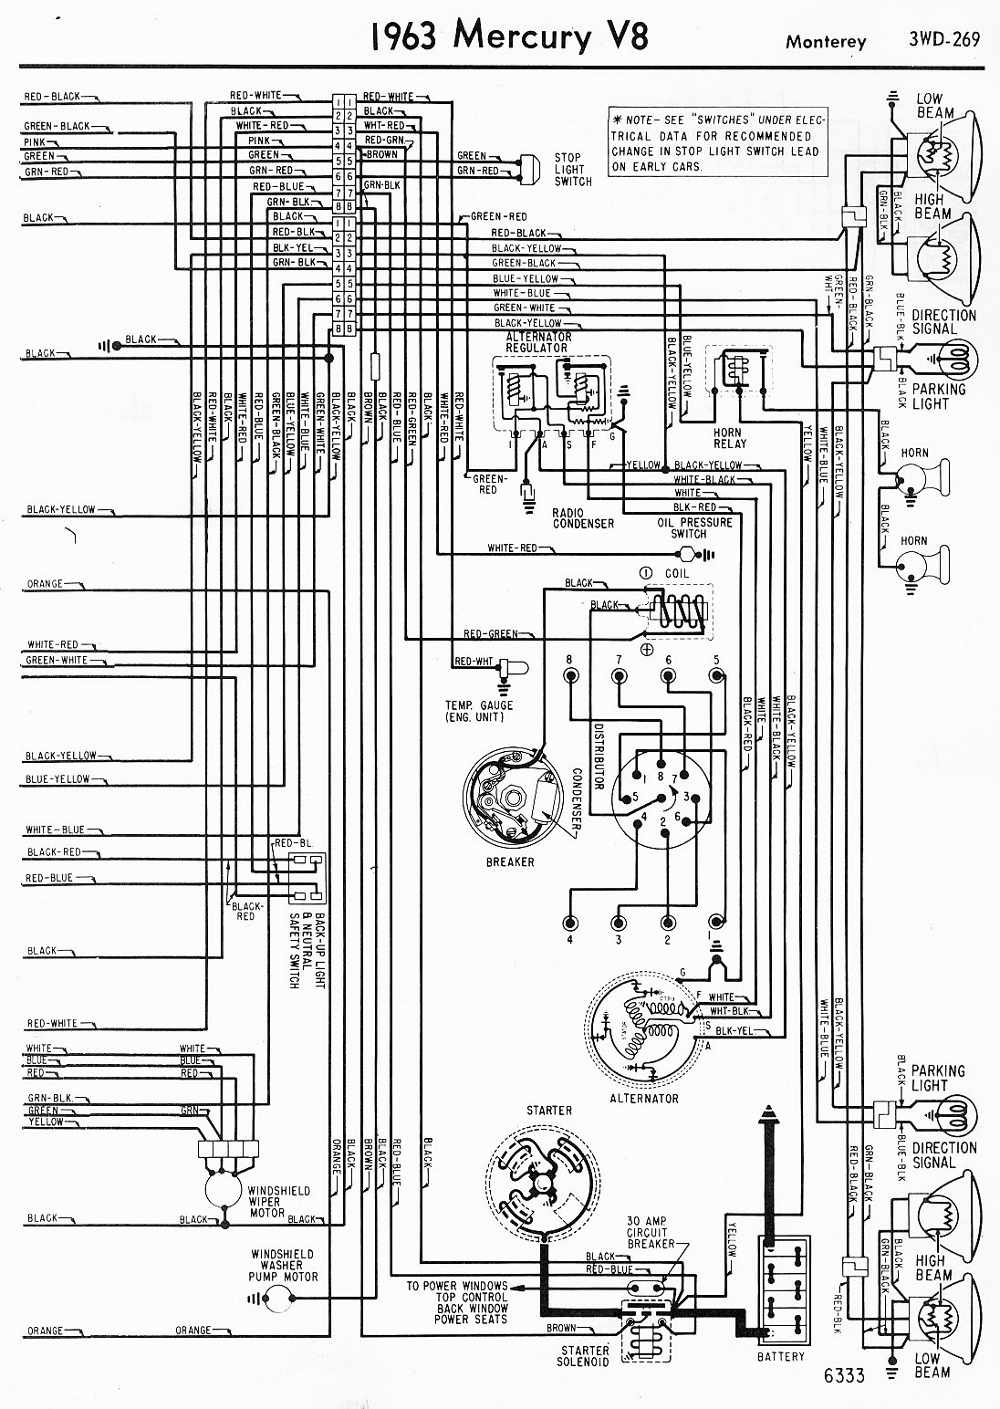 1948 Mercury Wiring Diagram Trusted Schematics 1963 Willys Truck Diagrams Convertible Harness Lincoln Continental Ford